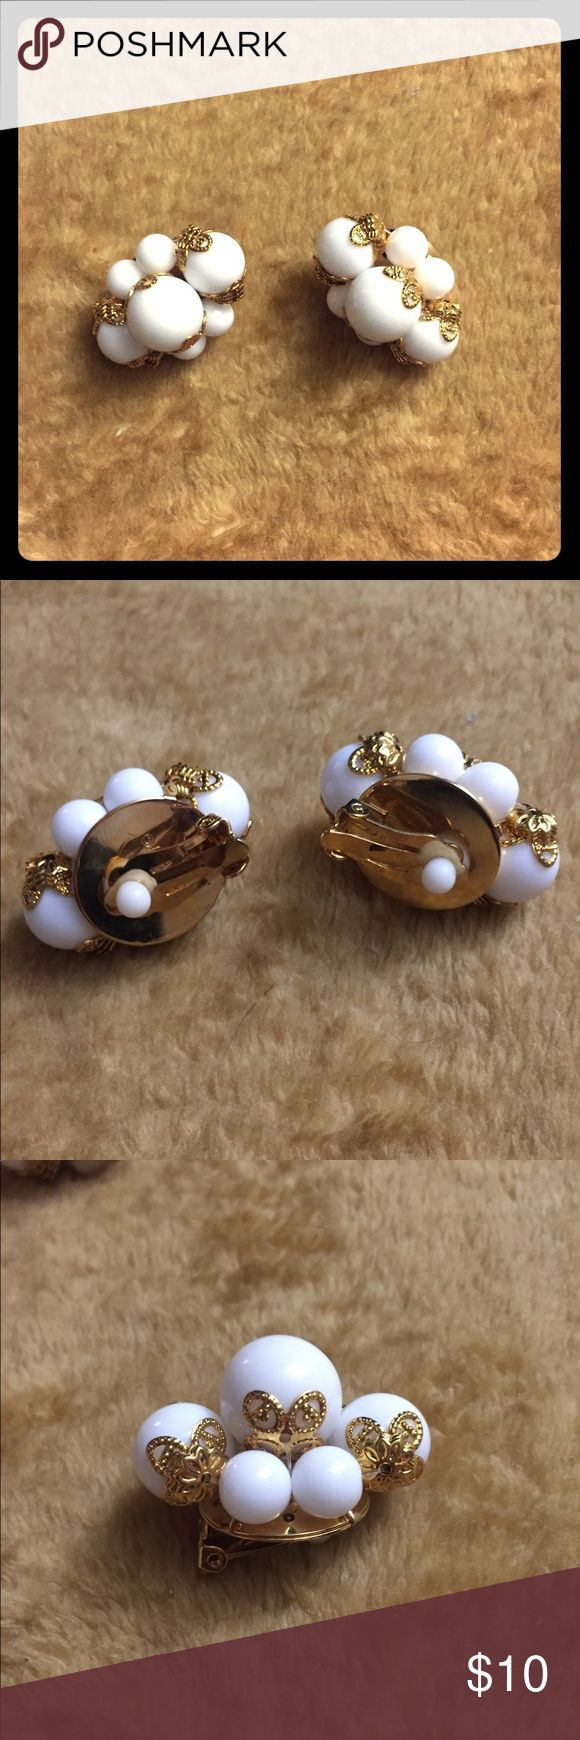 Joan River white bead gold tone clip-on earrings CLIP-ONS!! Large earrings about 1.5in along the longest portion. Pre-owned Joan Rivers Jewelry Earrings